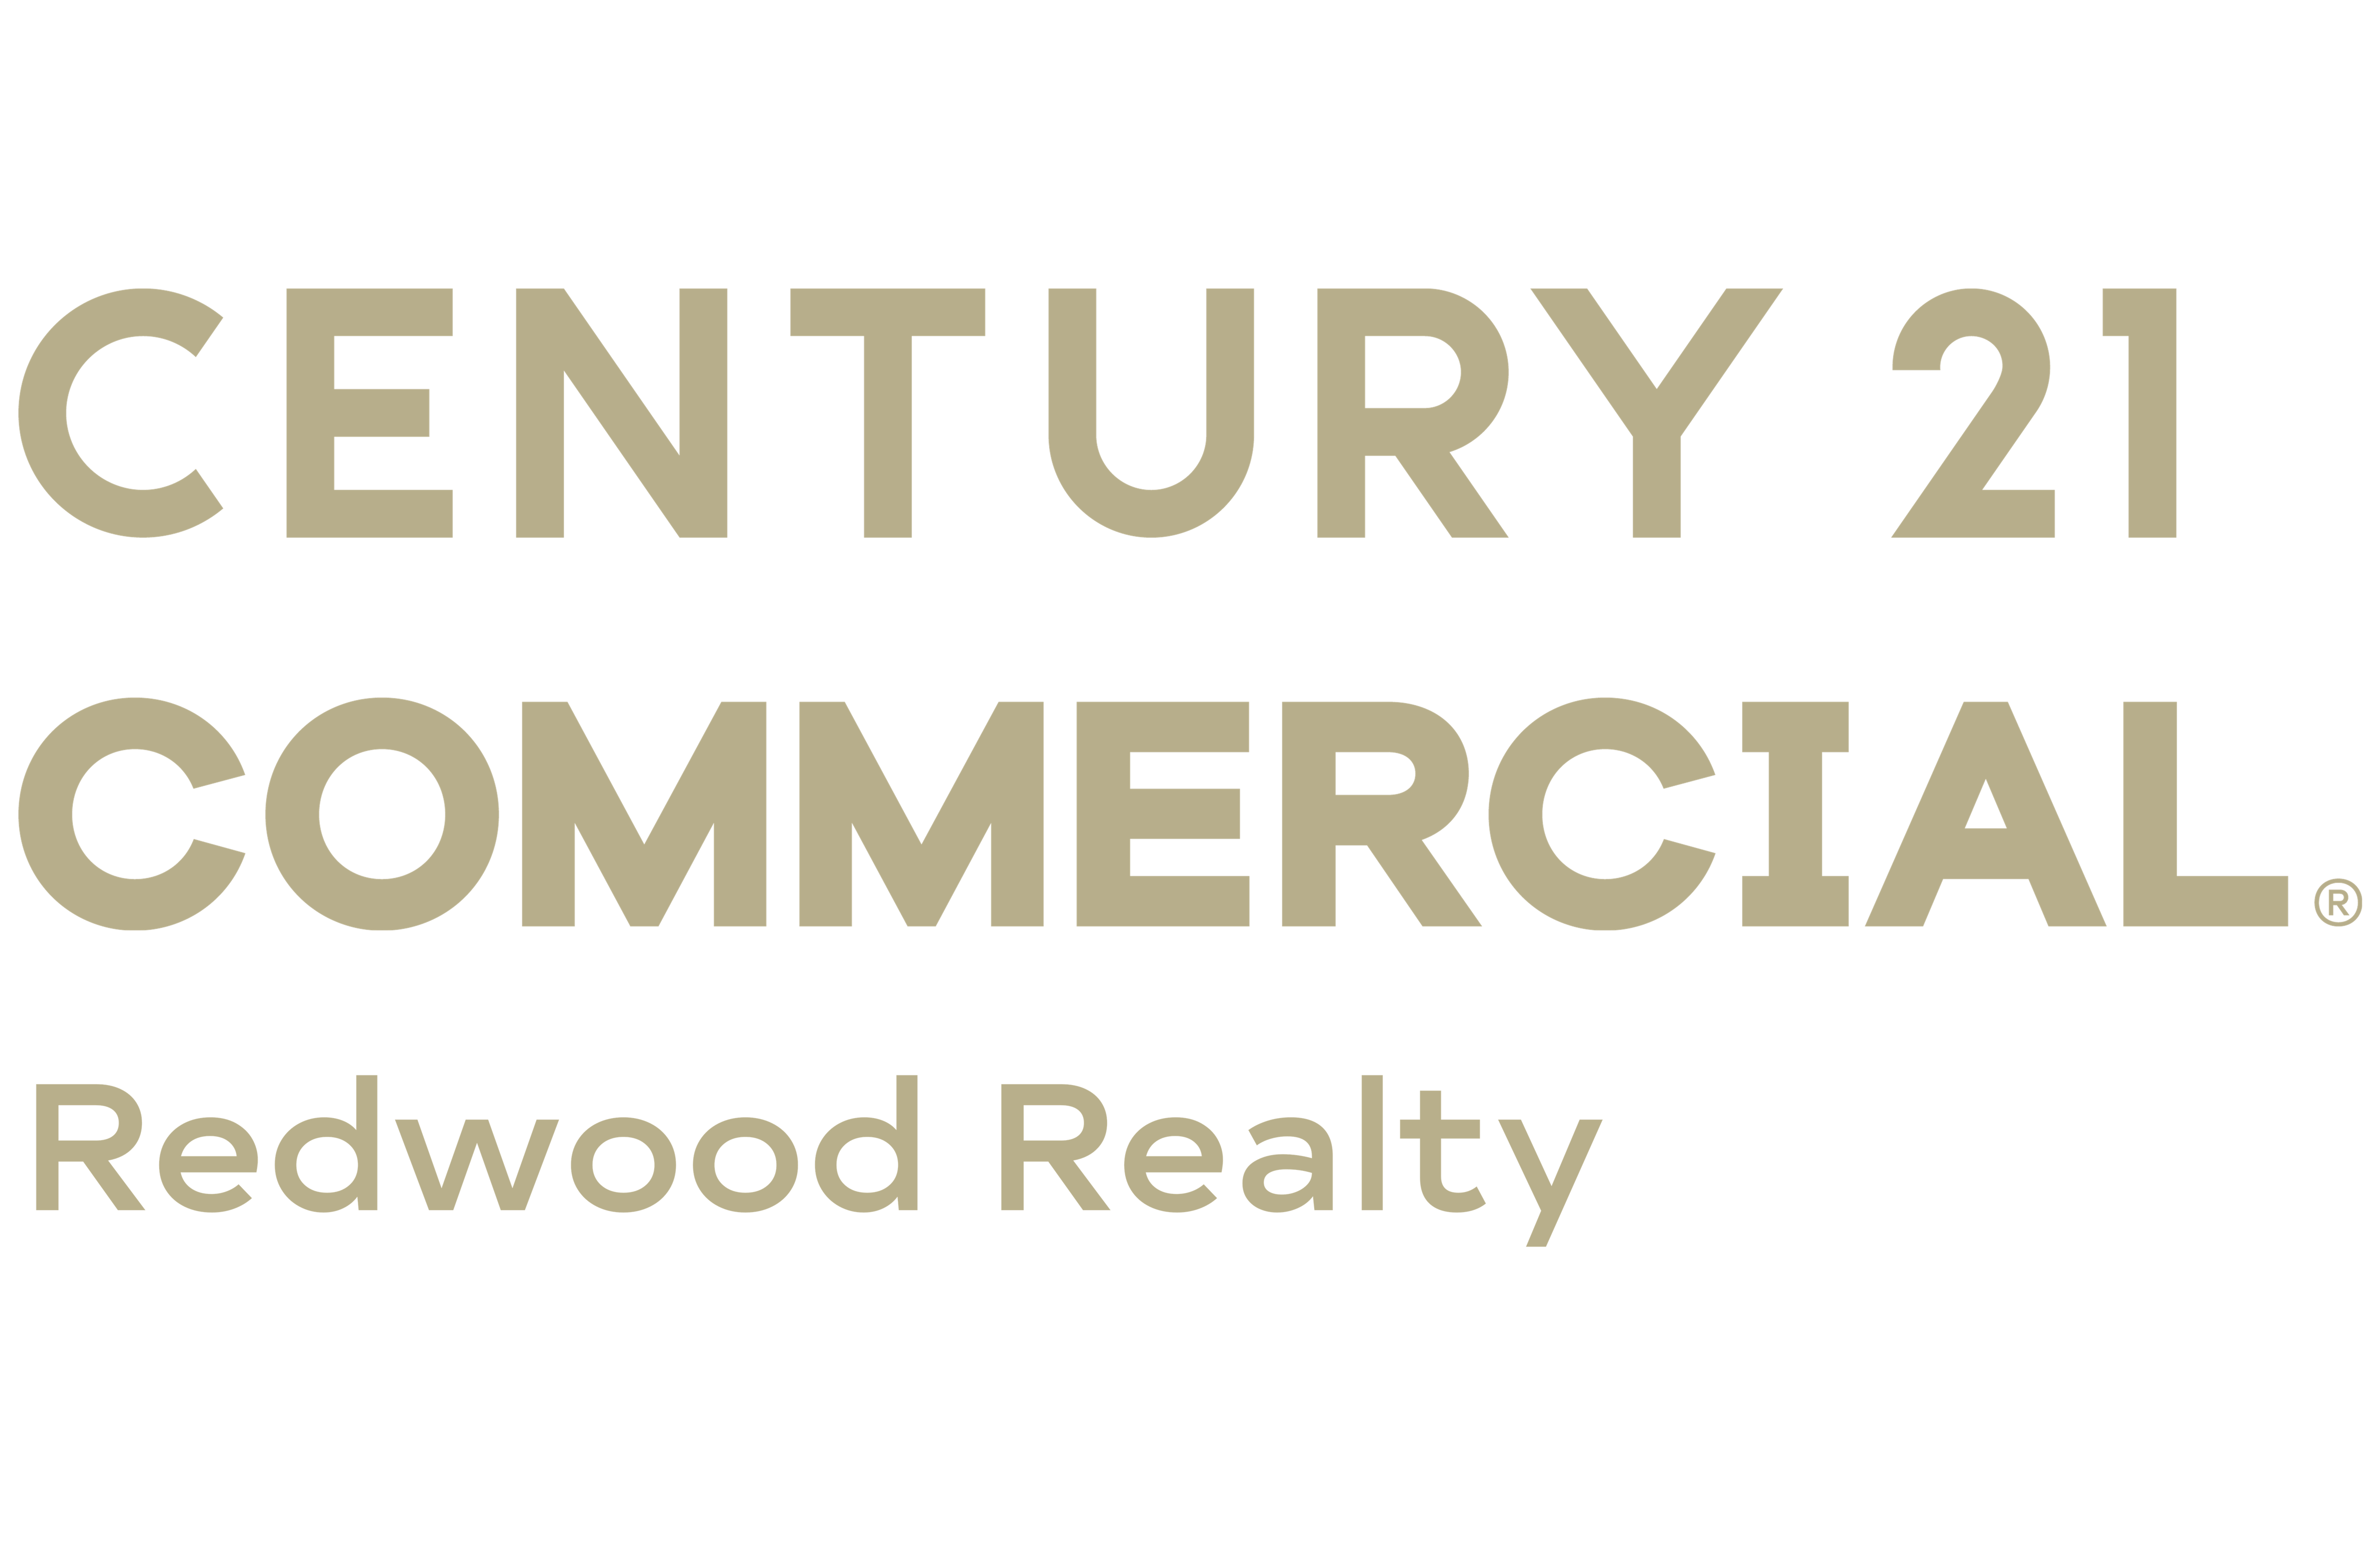 The Wright Sellers of CENTURY 21 Redwood Realty logo